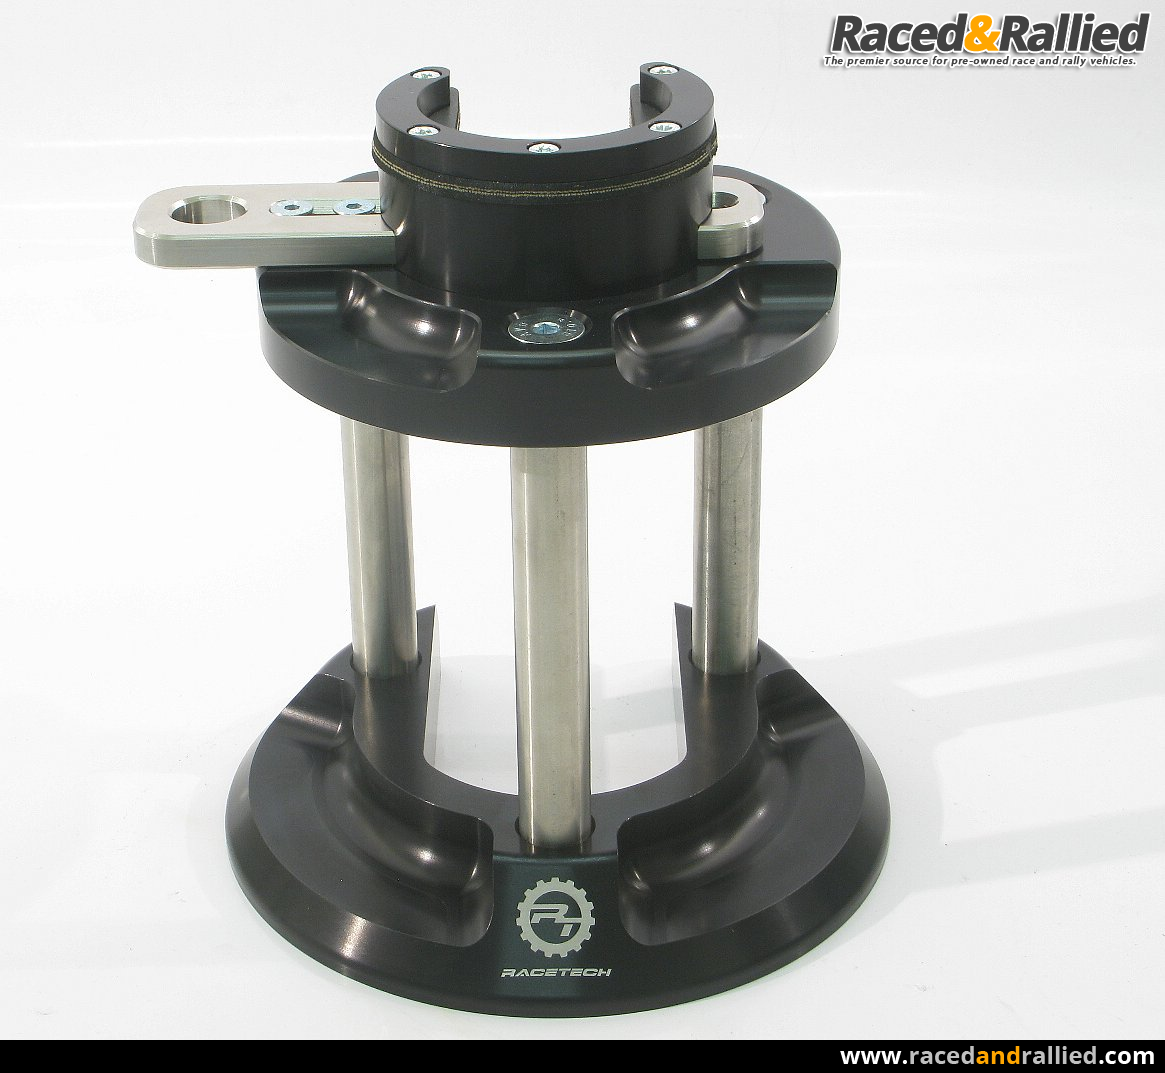 Replica Cars: Race Car Parts For Sale At Raced